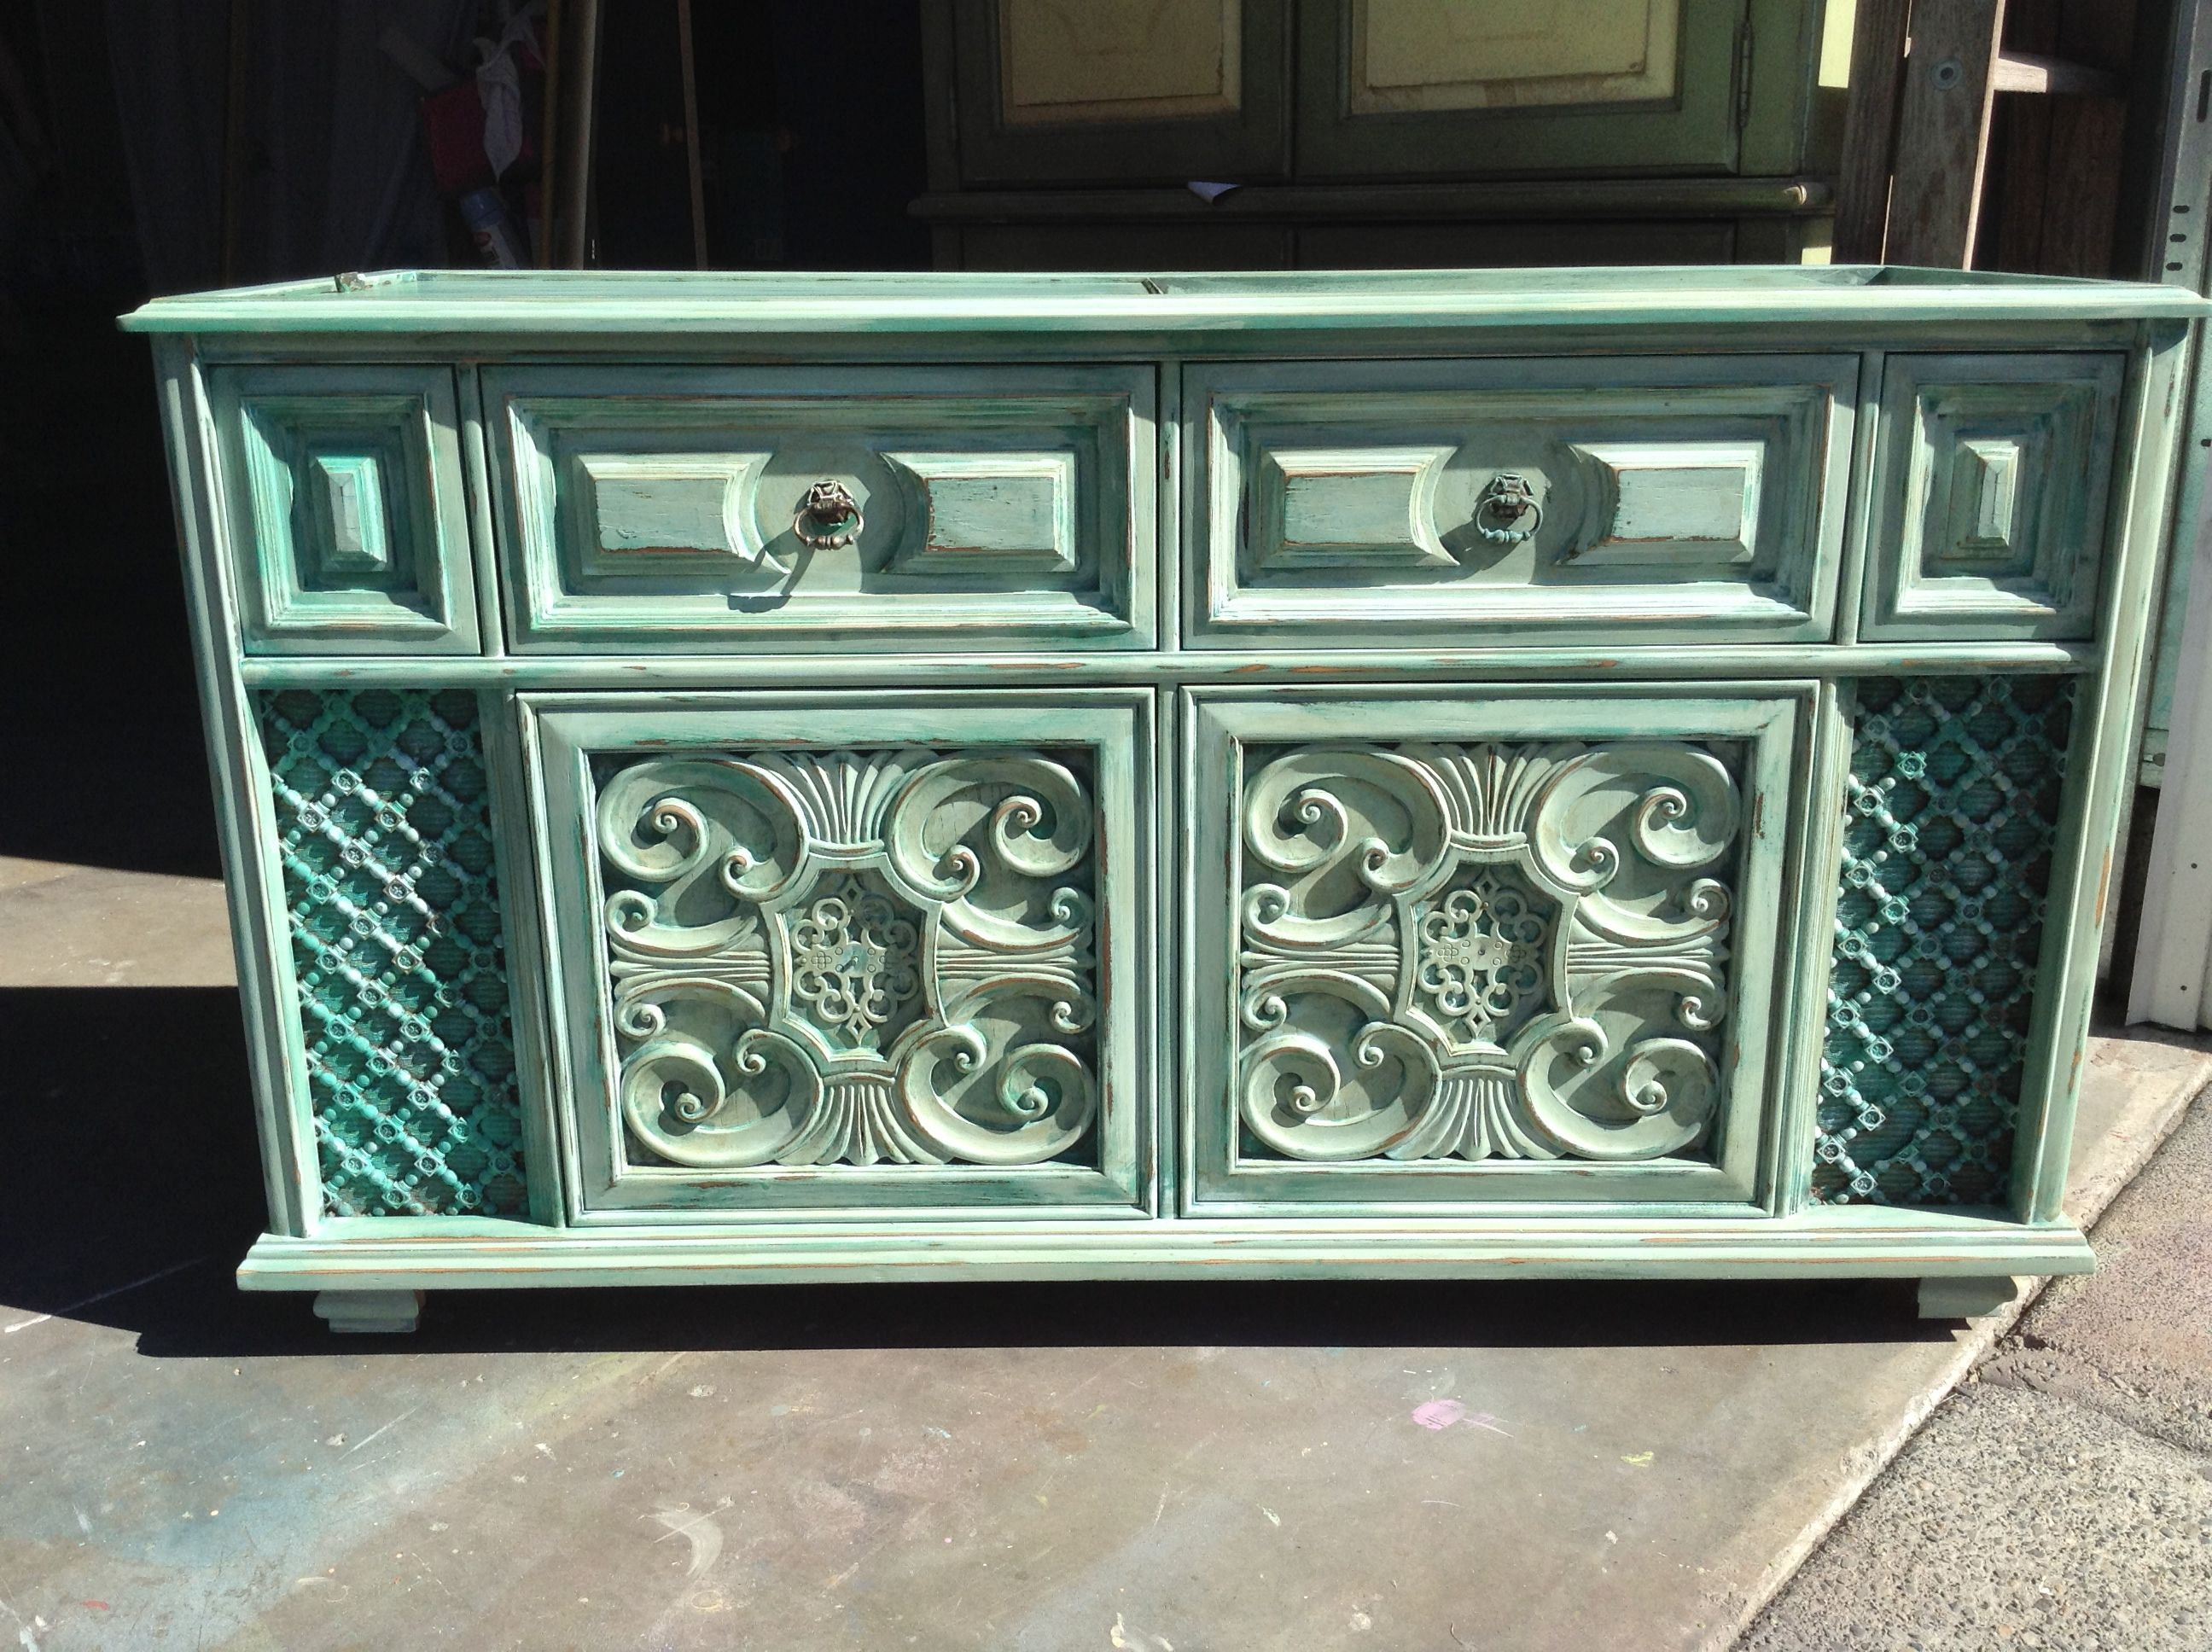 Painted Vintage Hi Fi Stereo Cabinet From Re New Relics Www Facebook Com Renewfurniturefinds Vintage Stereo Cabinet Stereo Cabinet Stereo Cabinet Redo